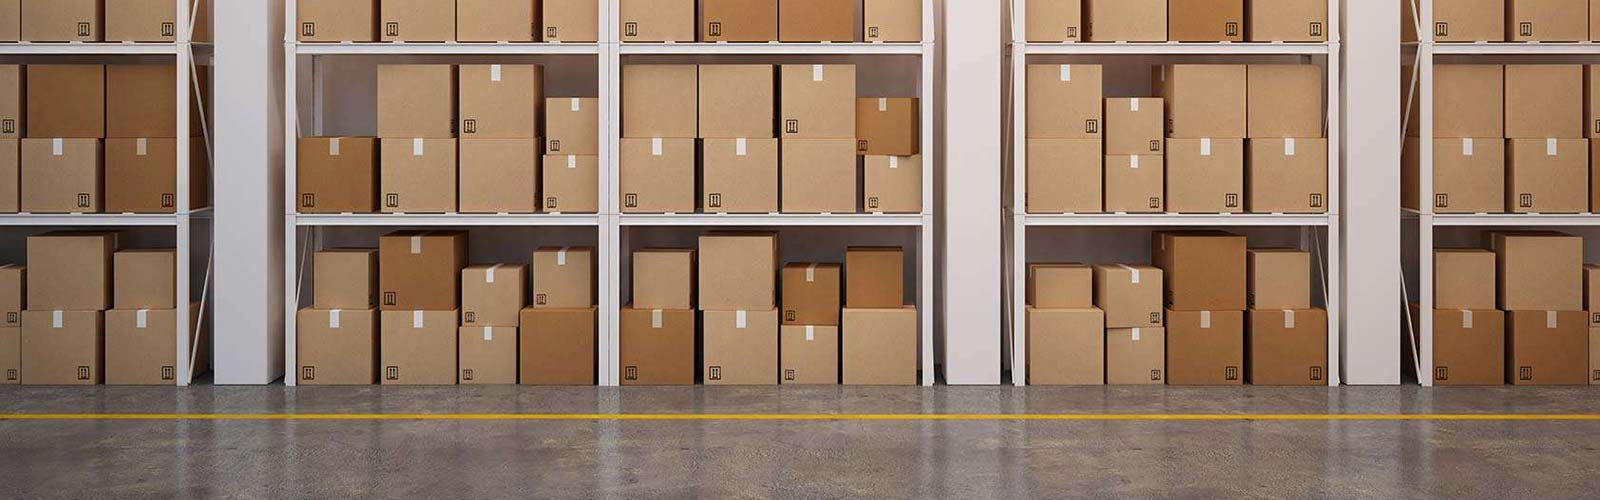 Storage Ireland – Temporary,mercial And Self Storage Solutions